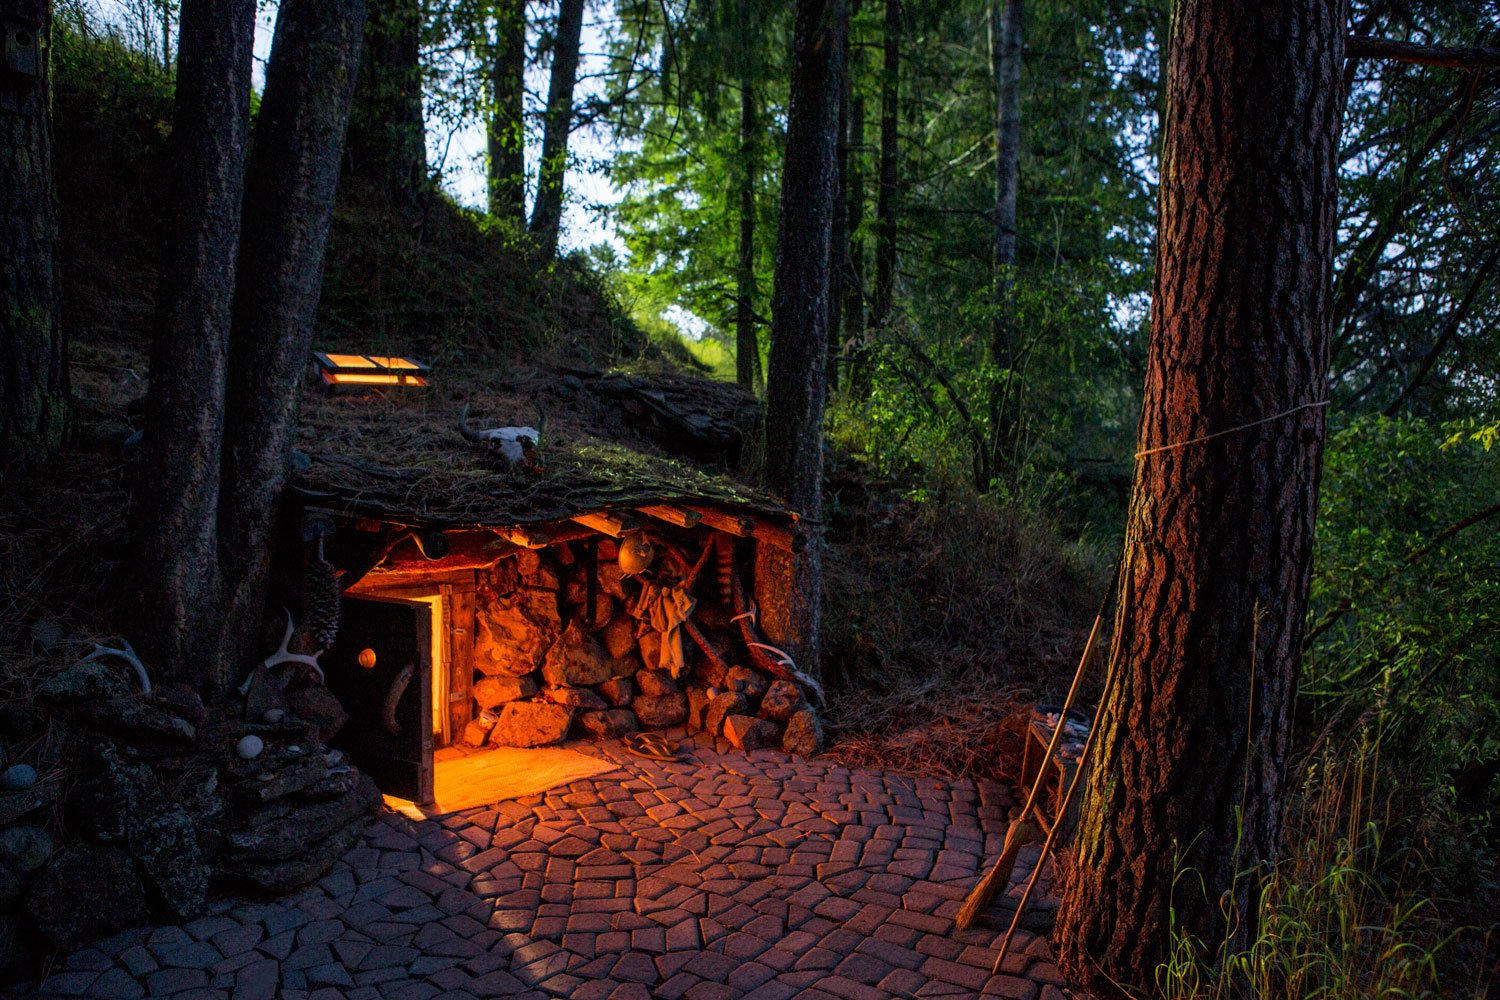 Some cabins are underground, or in the book's taxonomy, Earthen. Dan Price's former home was once broken into and the result was his commitment to live with fewer things, in nature. His hobbit-like home in Joseph, Oregon is complete with tunnels, crawlspaces, and a low-ceilinged bedroom. Using heavy-guage sheeting and wooden structures as roofing elements, he covered the space with dirt to facilitate natural growth above.  Daring Hillside Homes by Diana Budds